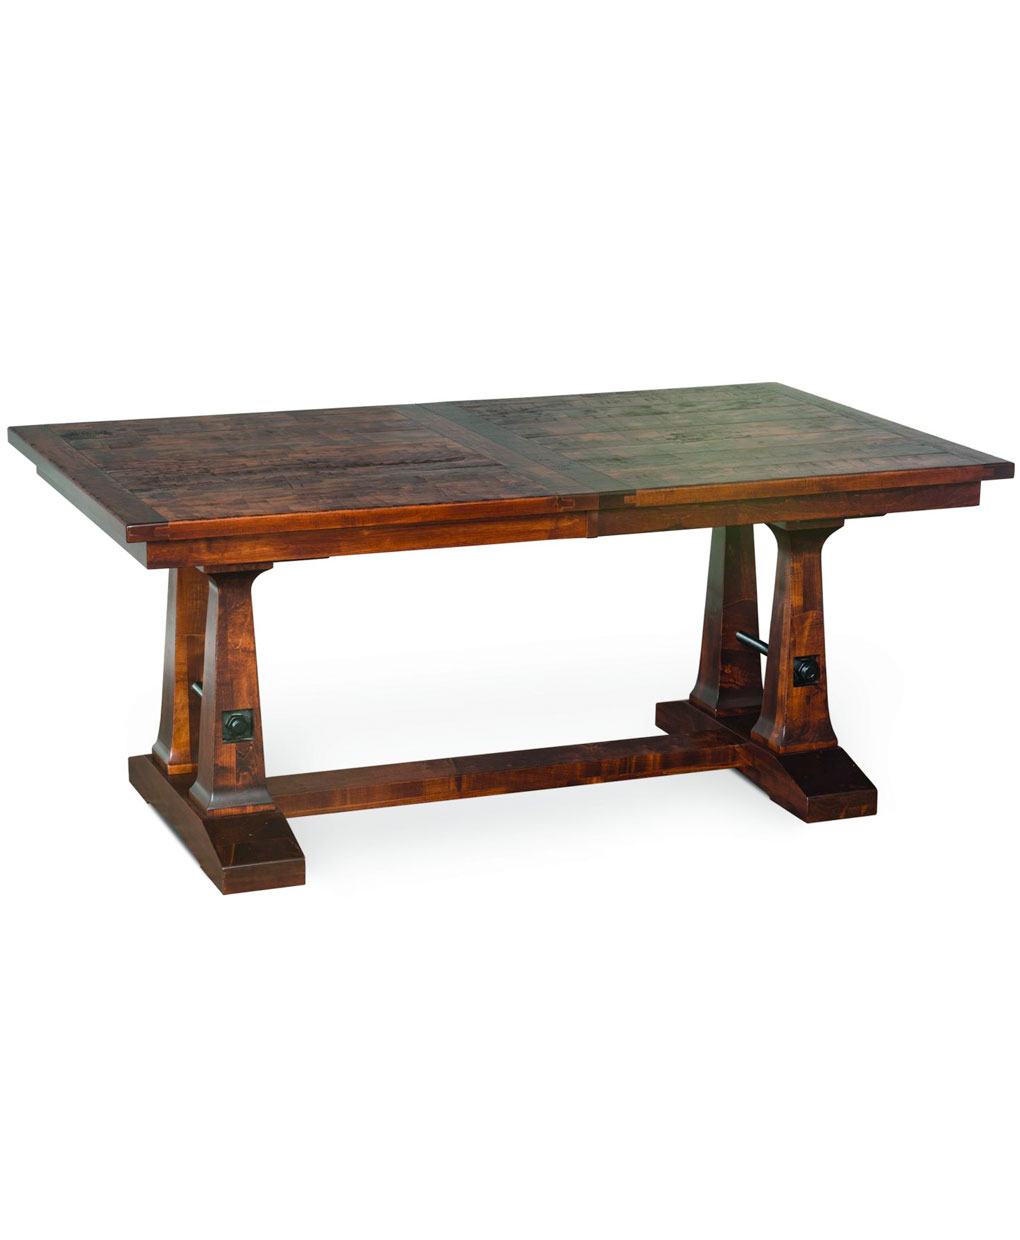 Vienna trestle dining table amish direct furniture Trestle dining table